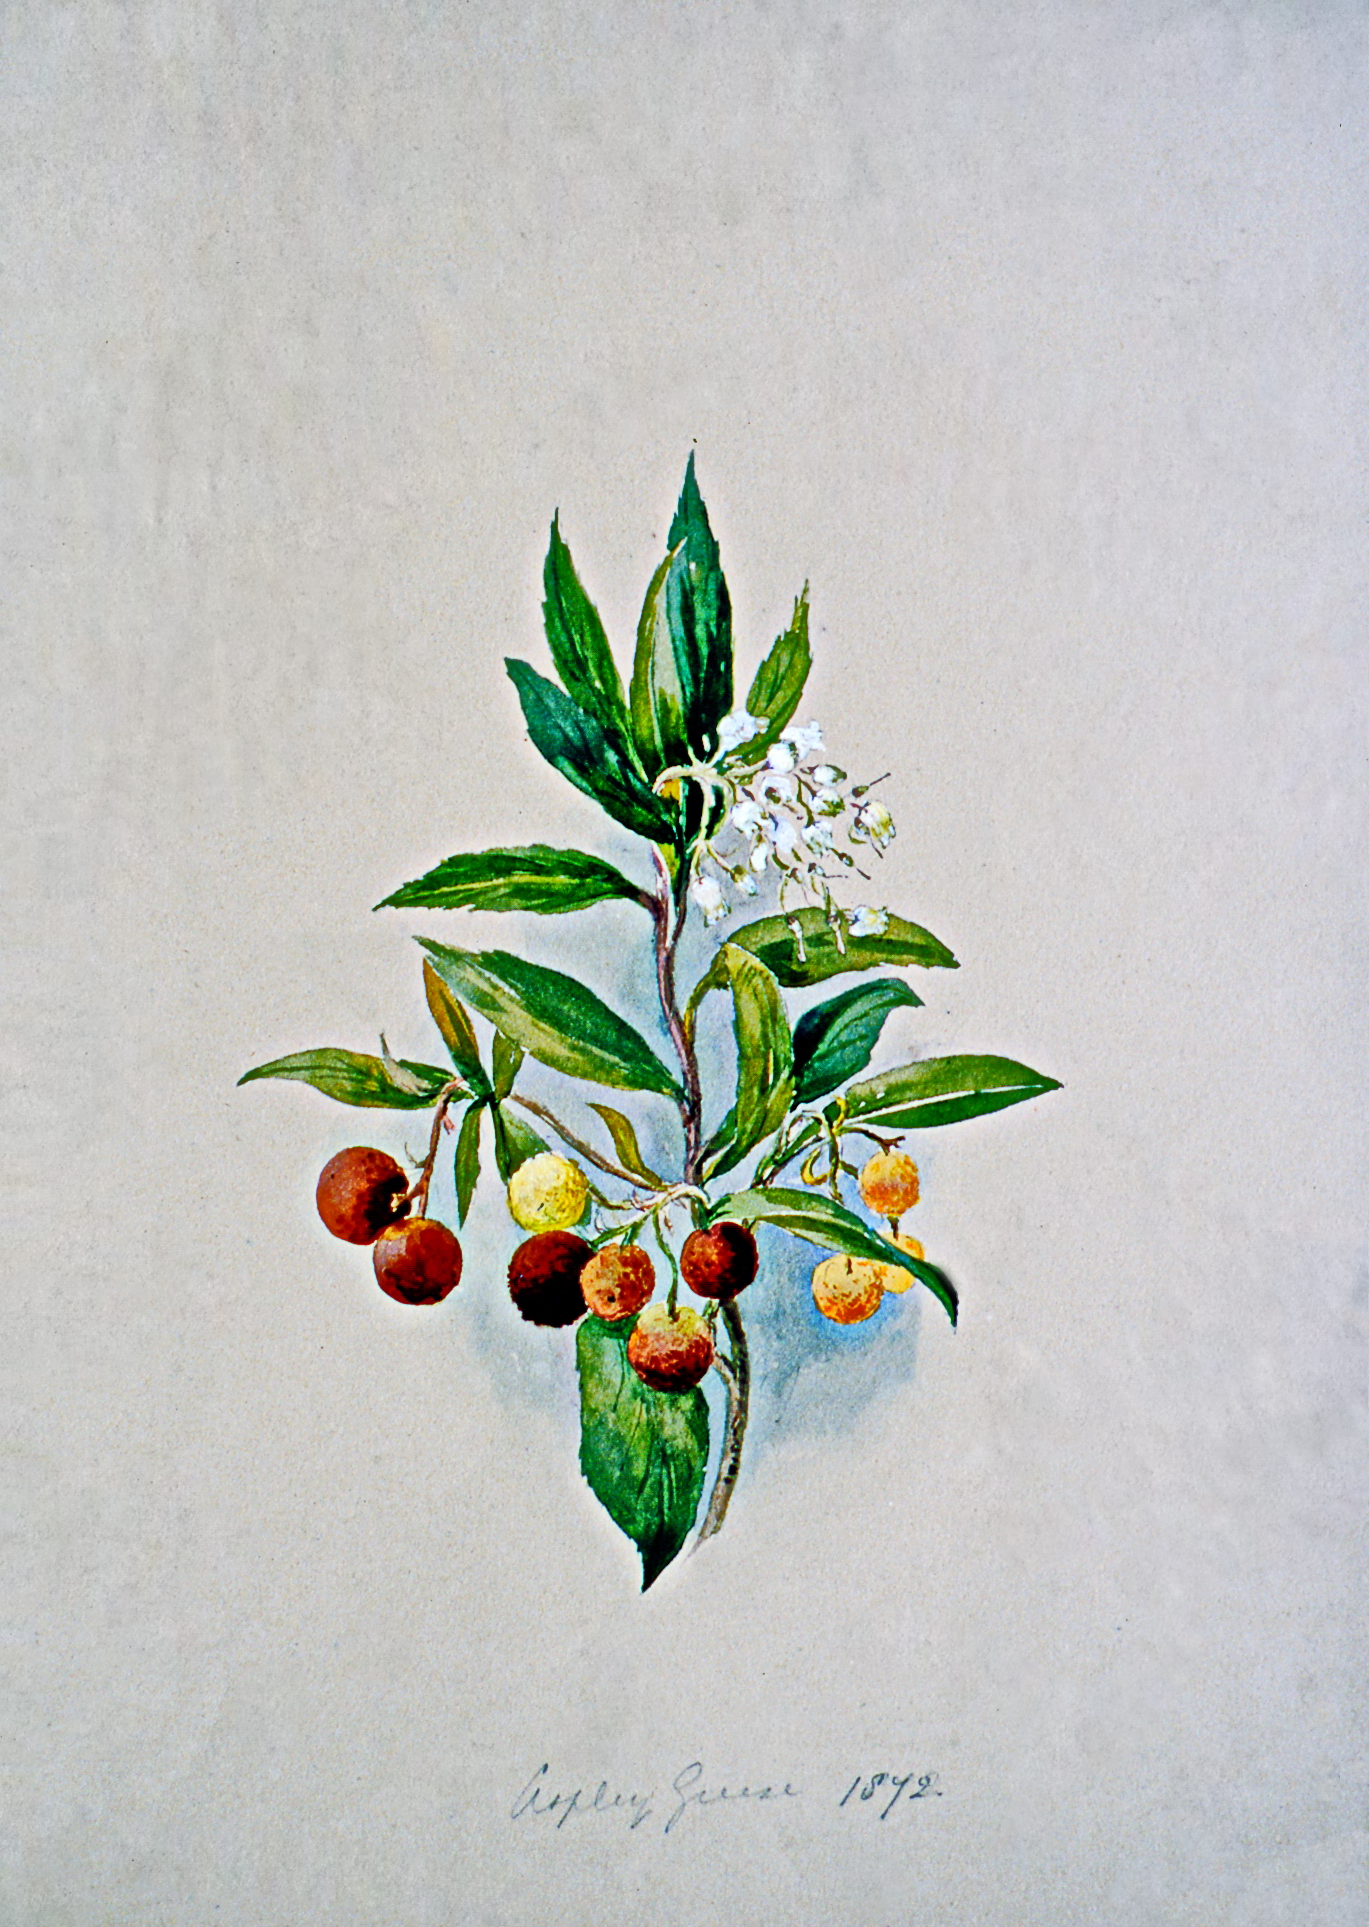 Untitled (Botanical), n.d,, Julia Bullock Webster, watercolour on paper, 35.5 cm x 25.6 cm, 2003.02.25, gift of The Grist Mill at Keremeos